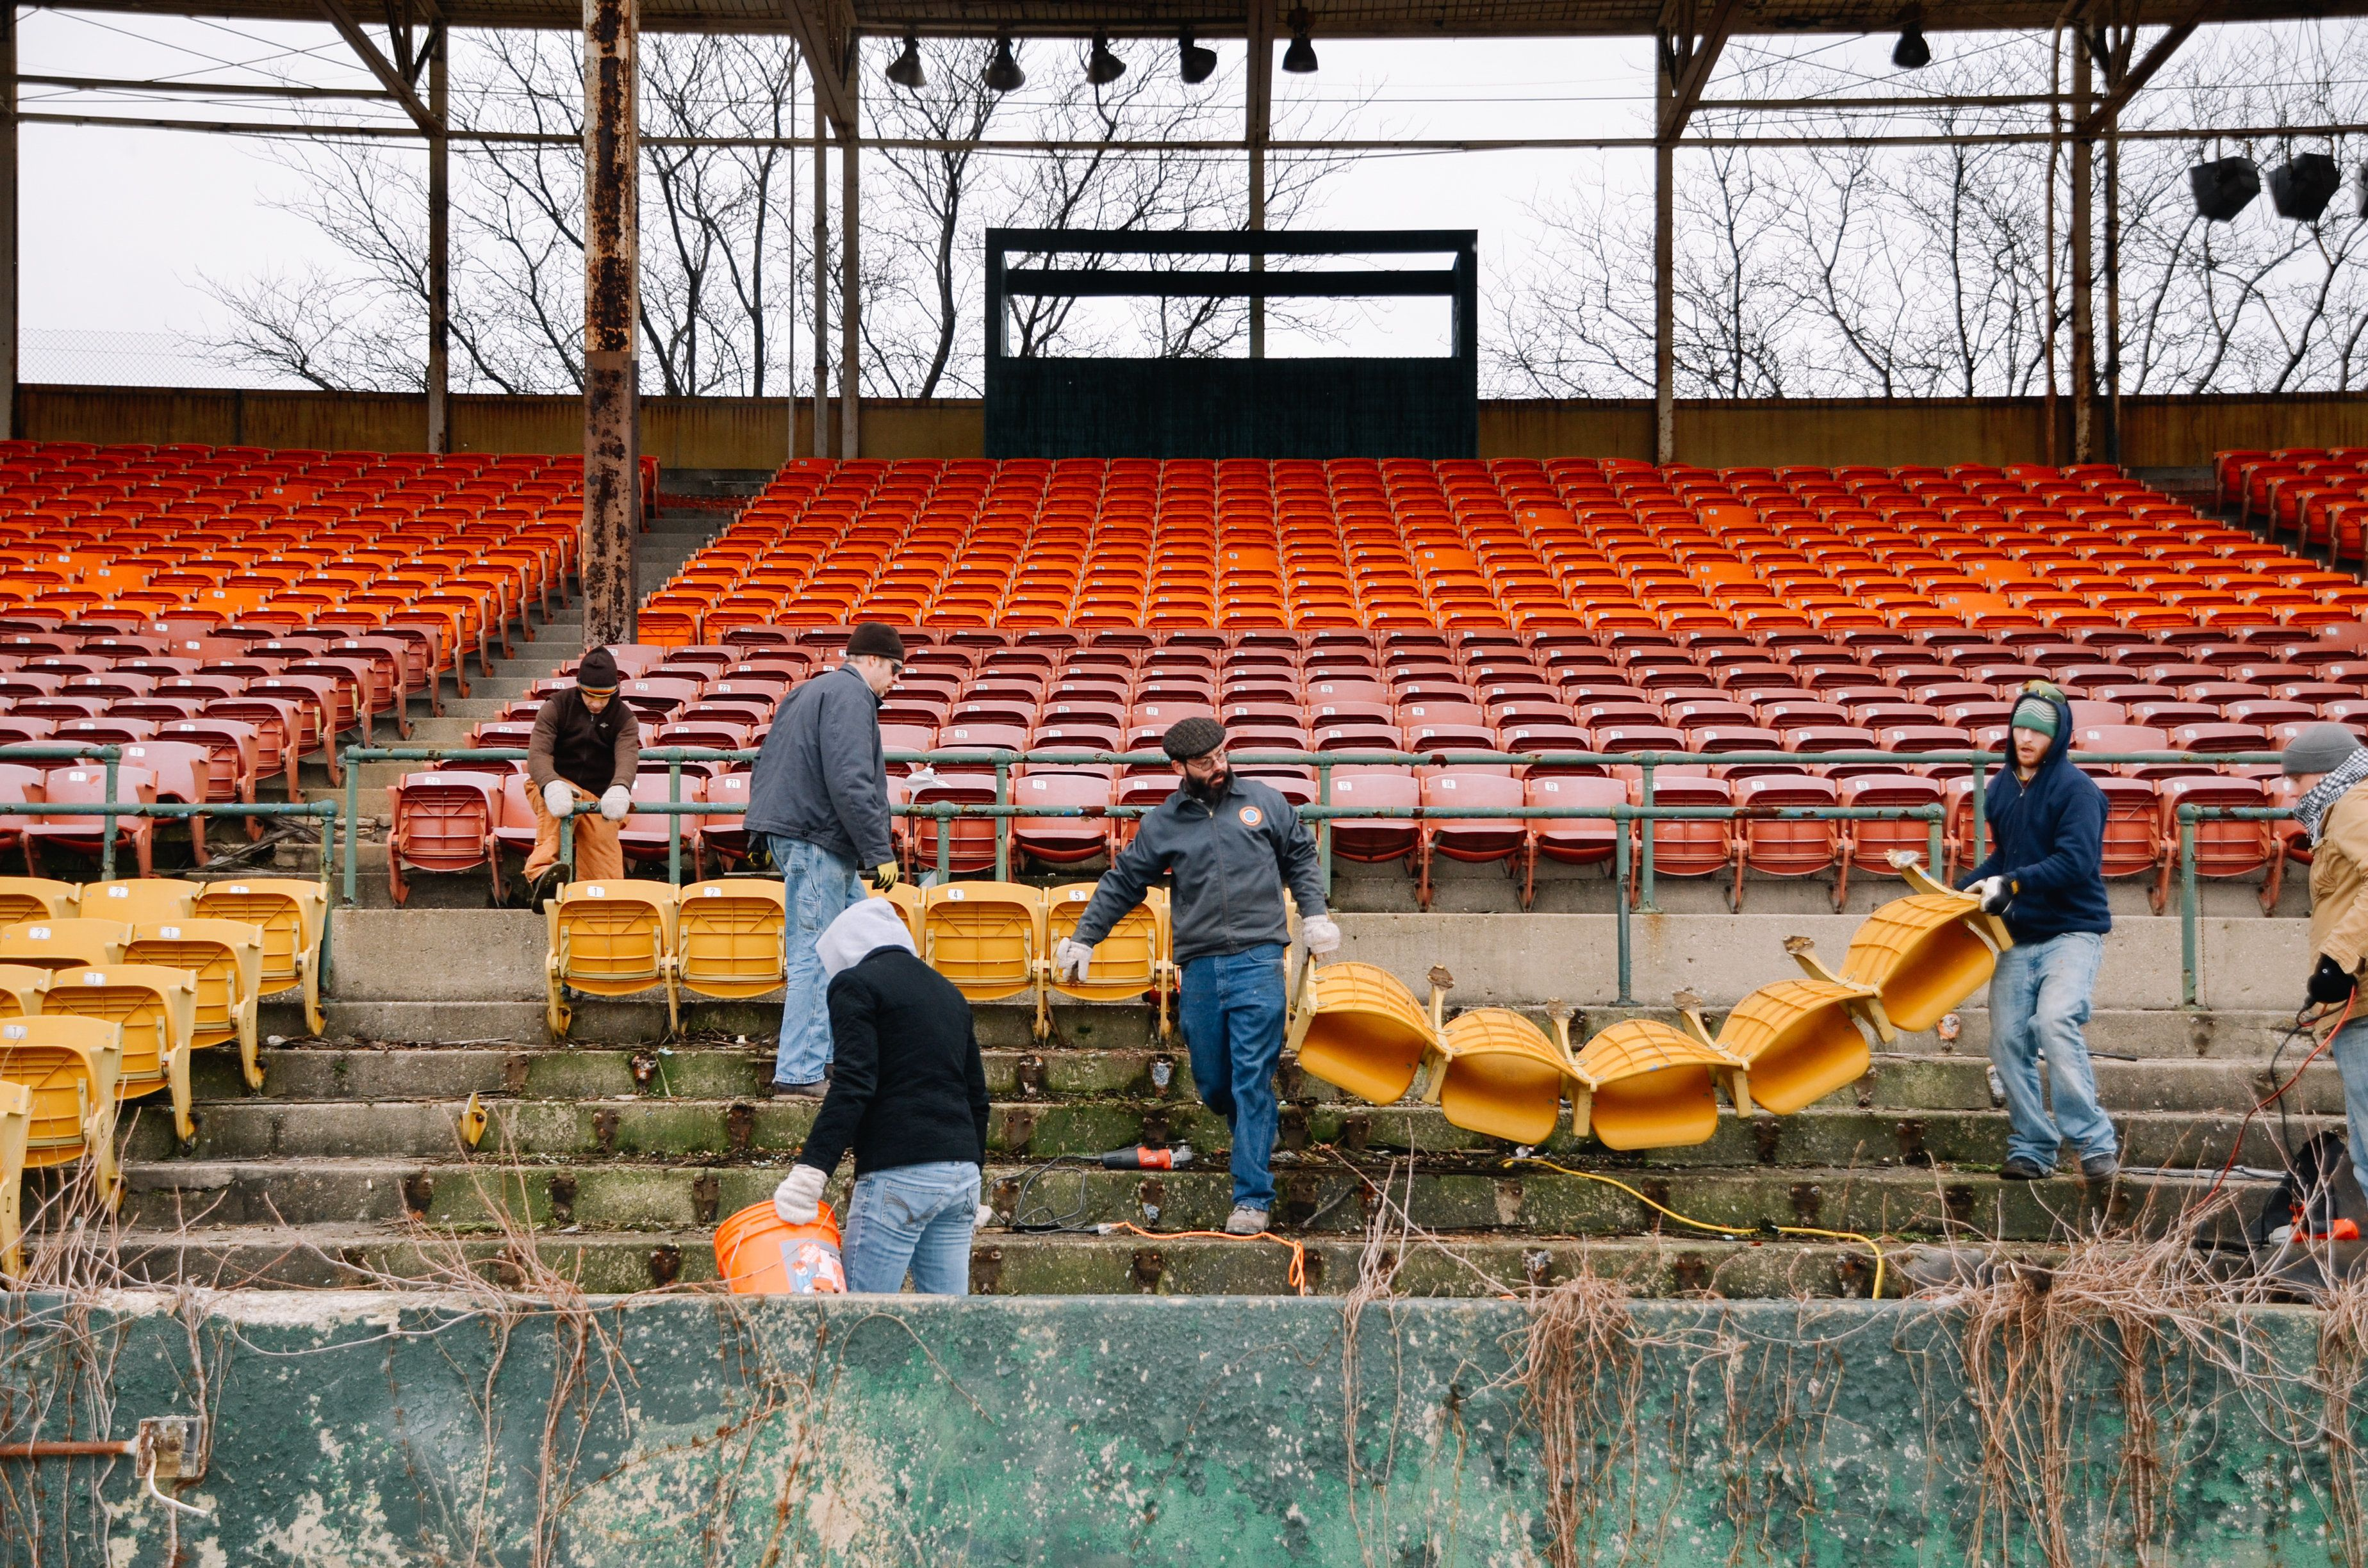 The nonprofit People for Urban Progress salvages material from old stadiums and turnsit into durable products and urban